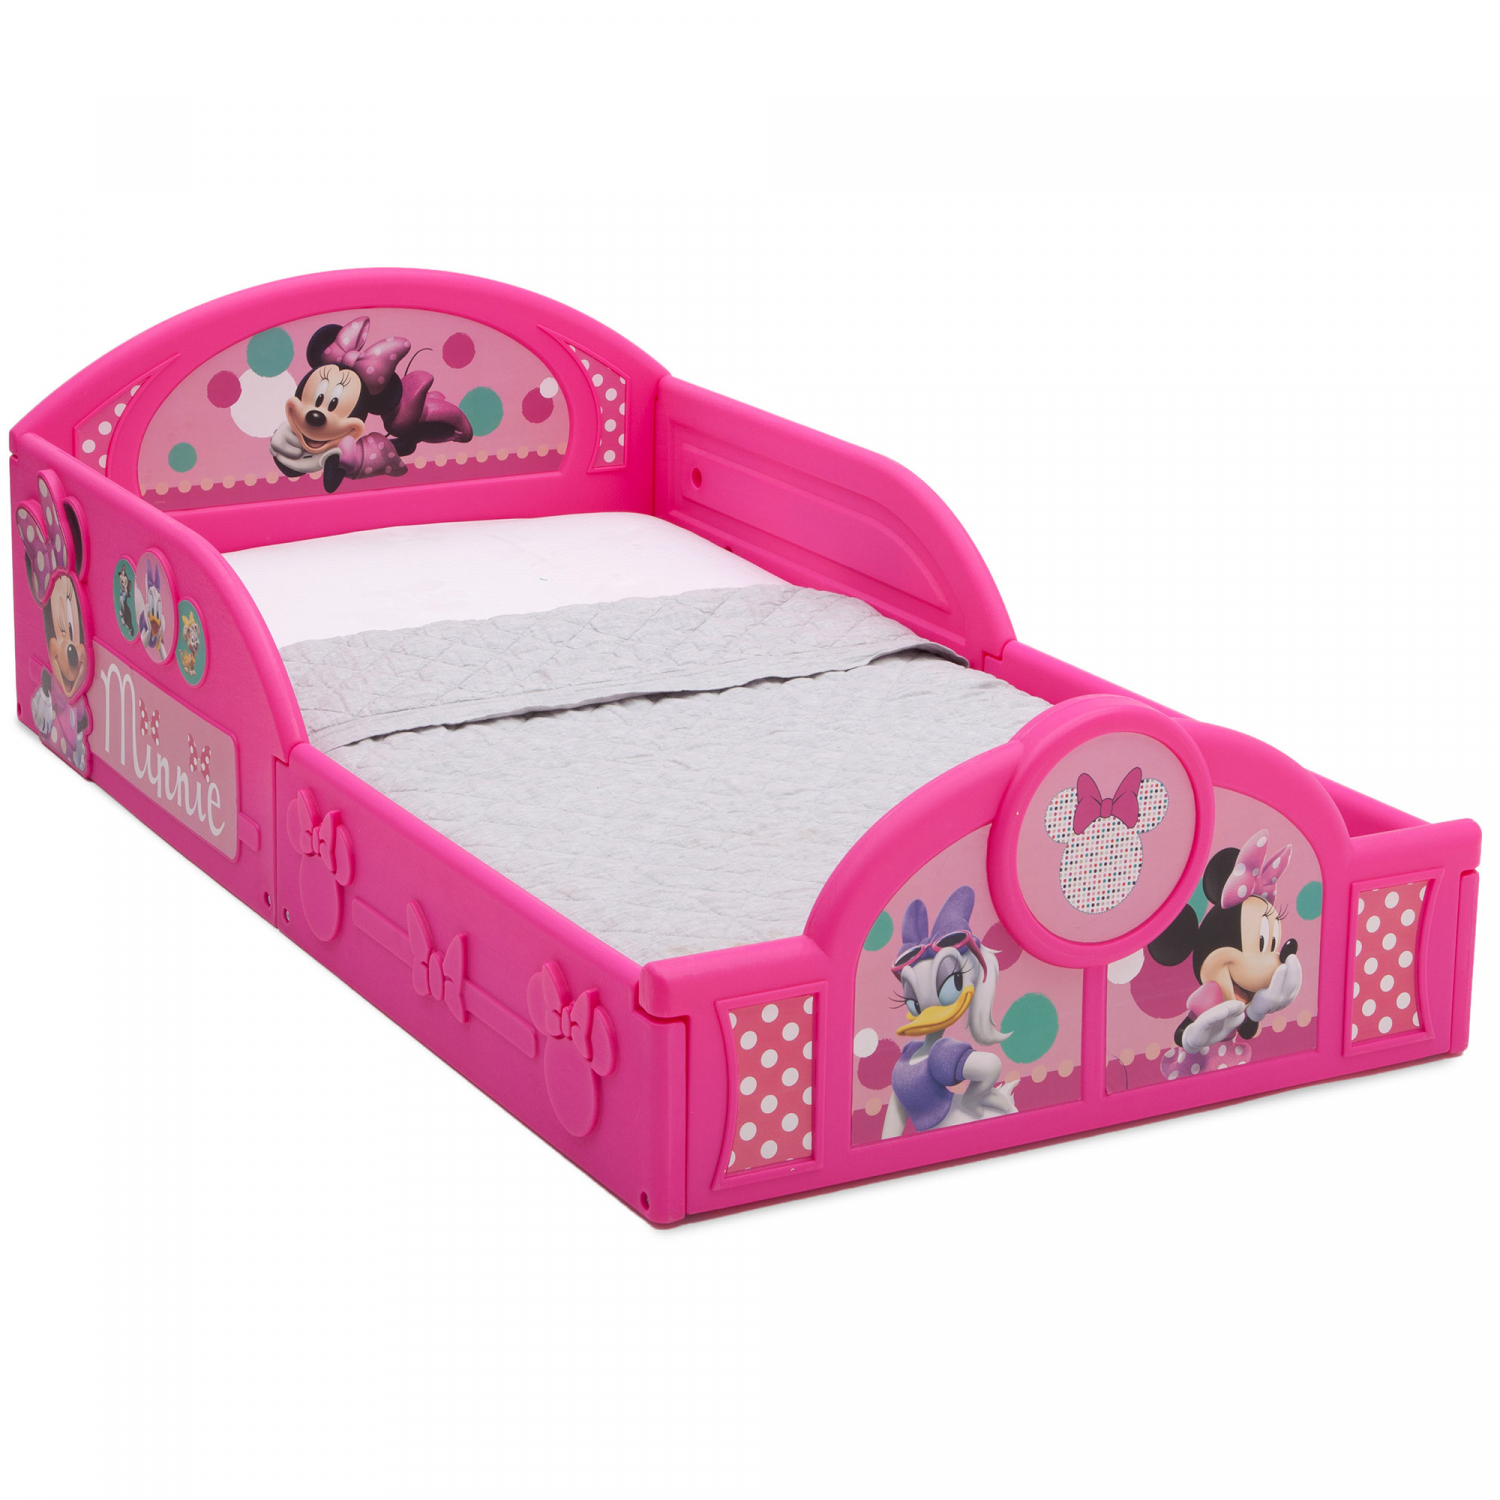 new minnie mouse plastic sleep and play toddler bed frame